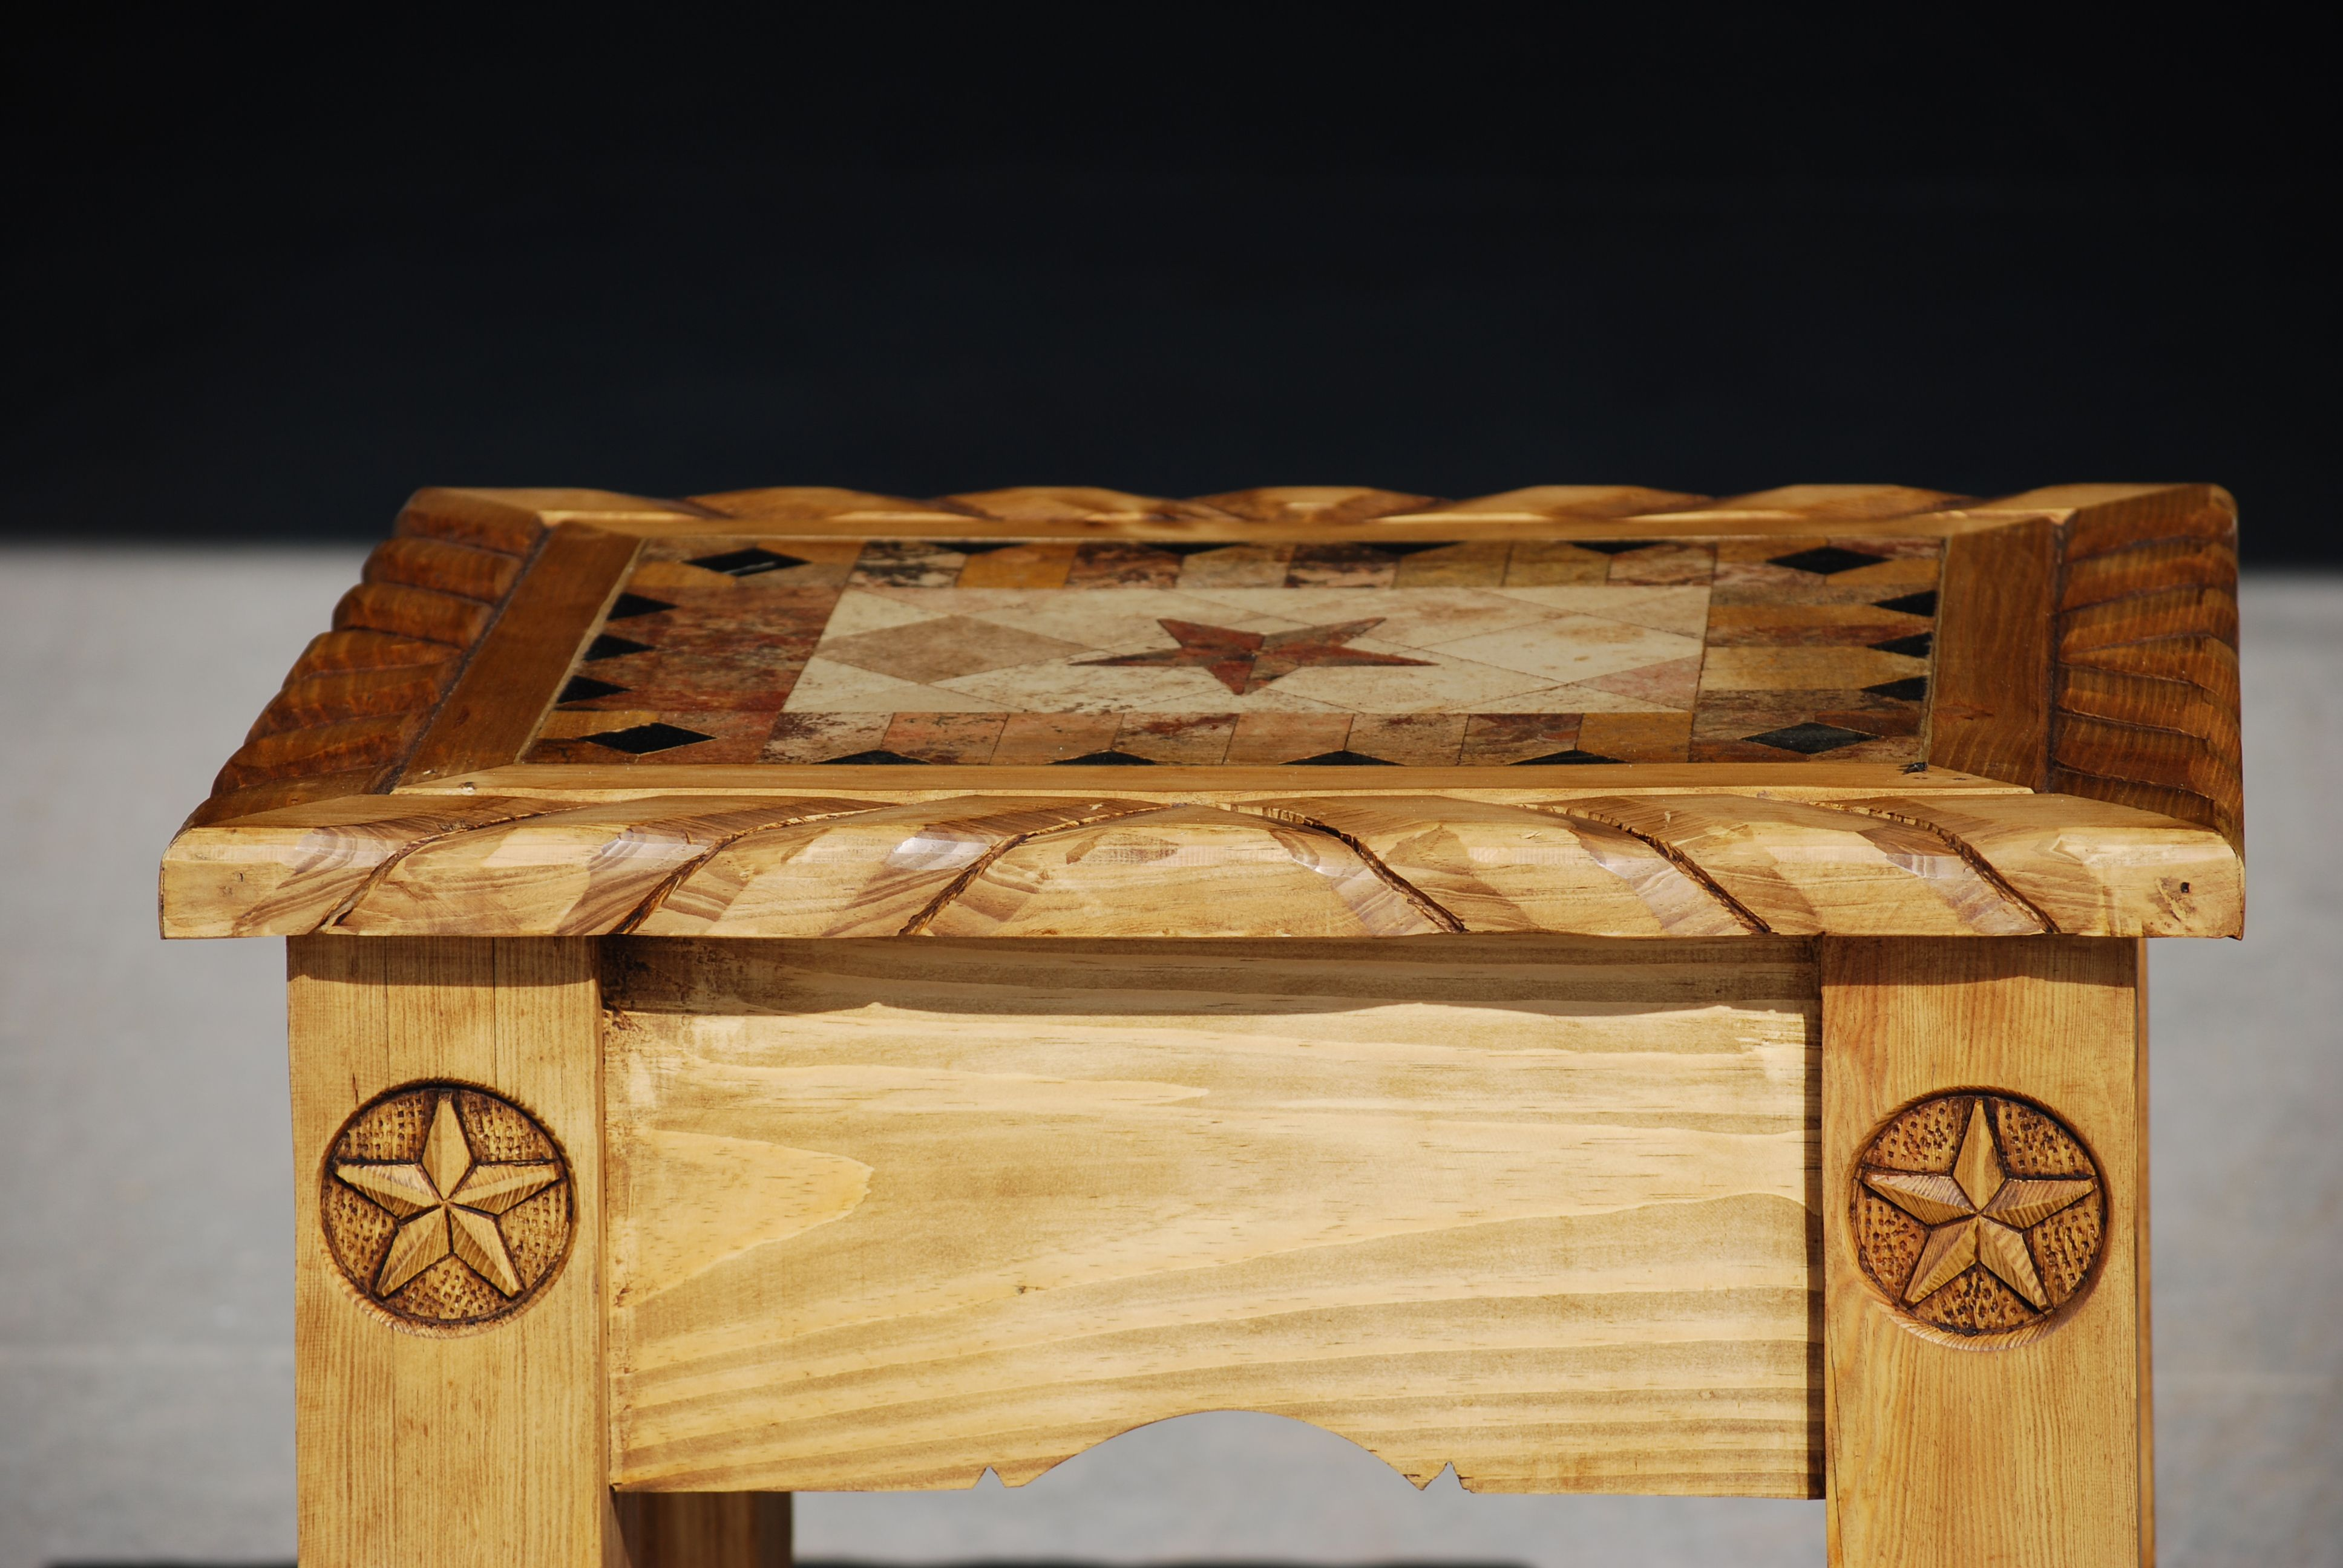 Rustic pine end table with marble and texas stars Recipes